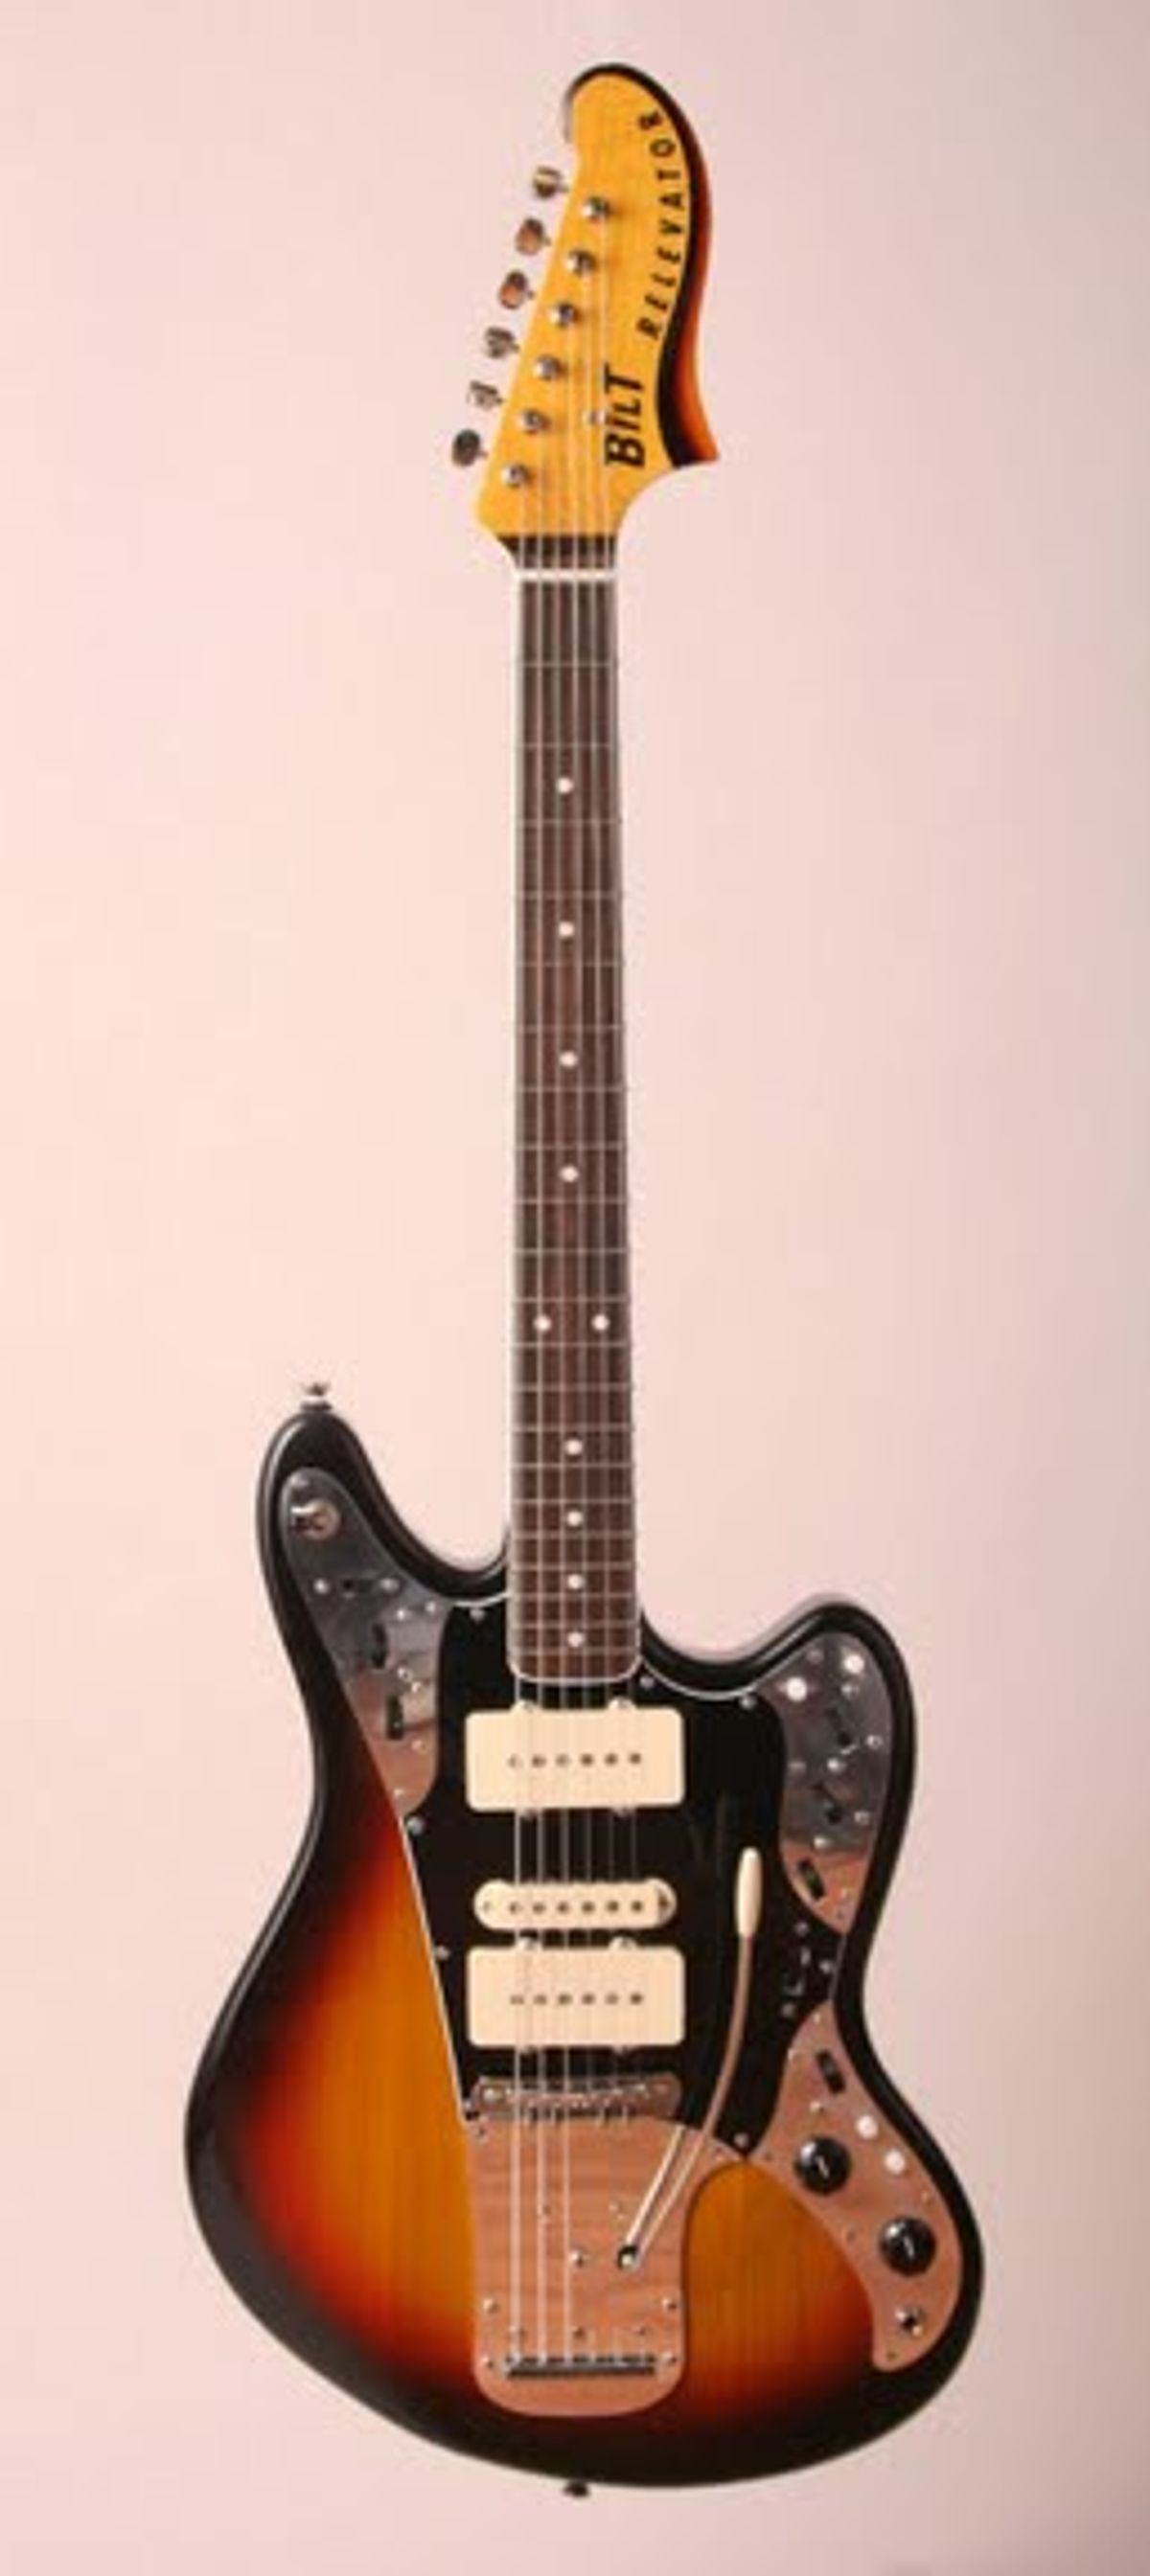 BilT Guitars Introduces the Relevator with Built-In Effects